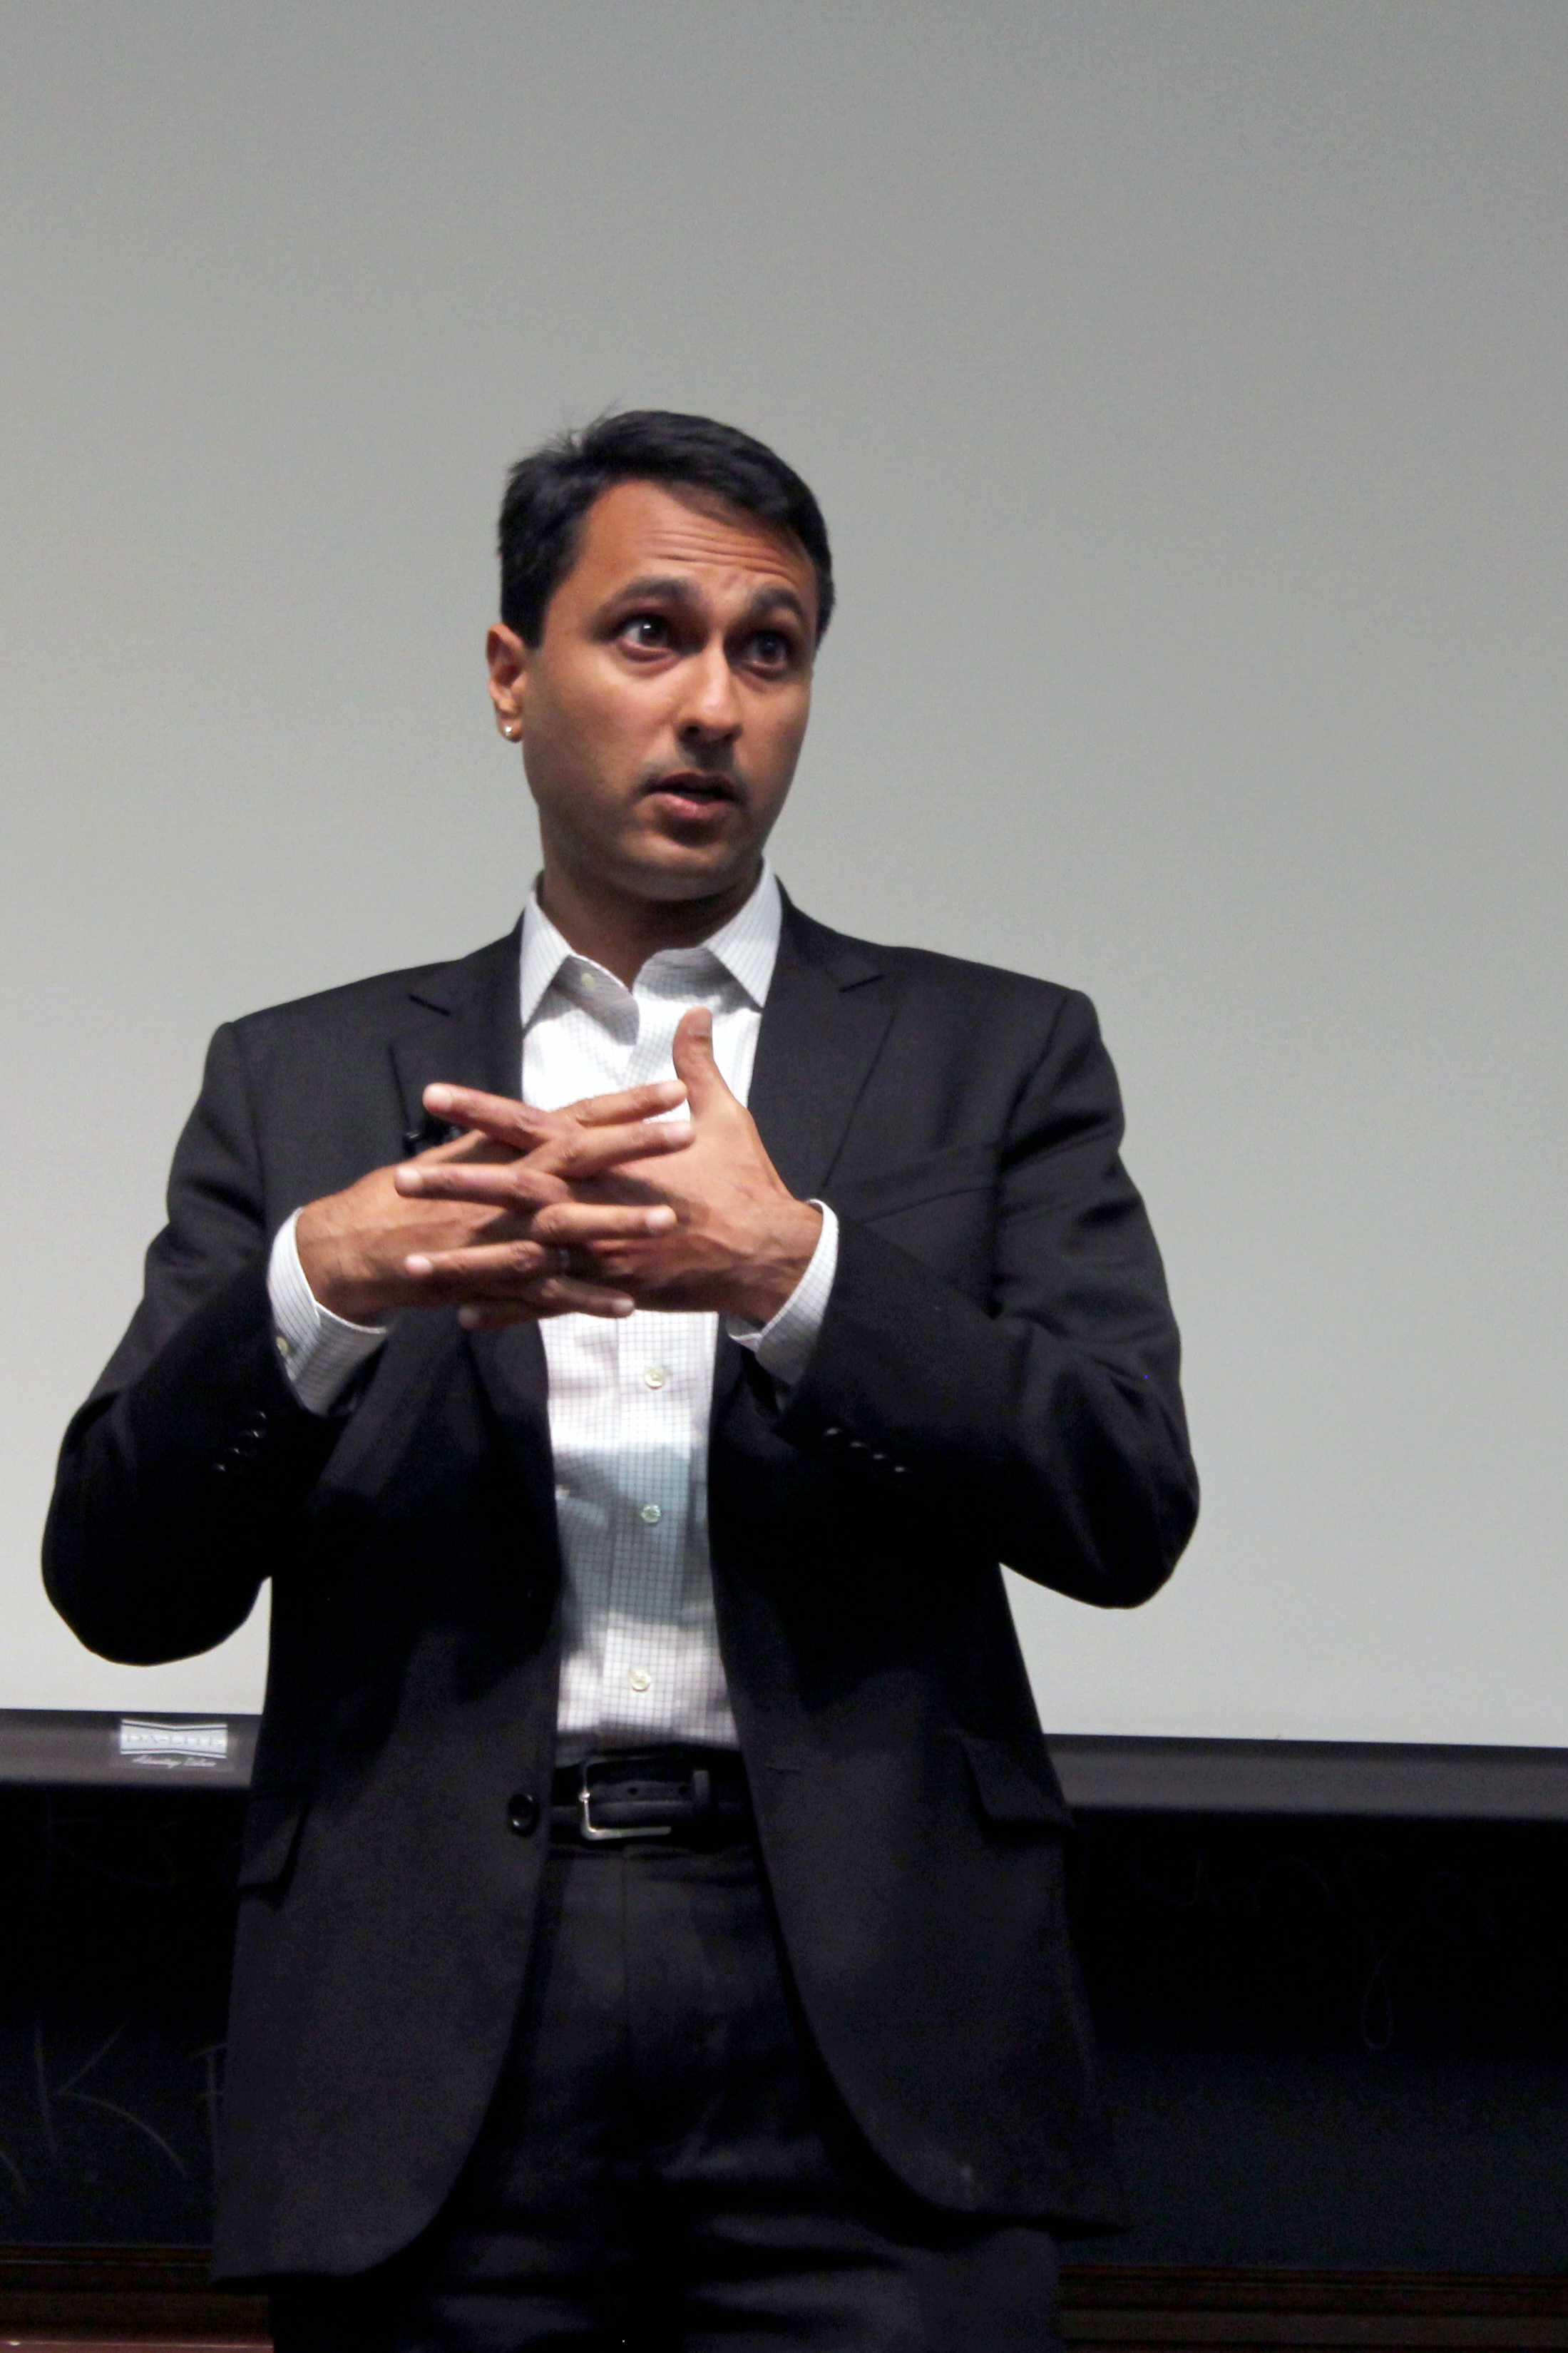 Eboo Patel challenges Northwestern students to participate in Interfaith cooperation. Patel, an adviser to President Barack Obama, spoke about his organization, Interfaith Youth Core and his work in promoting religious harmony.